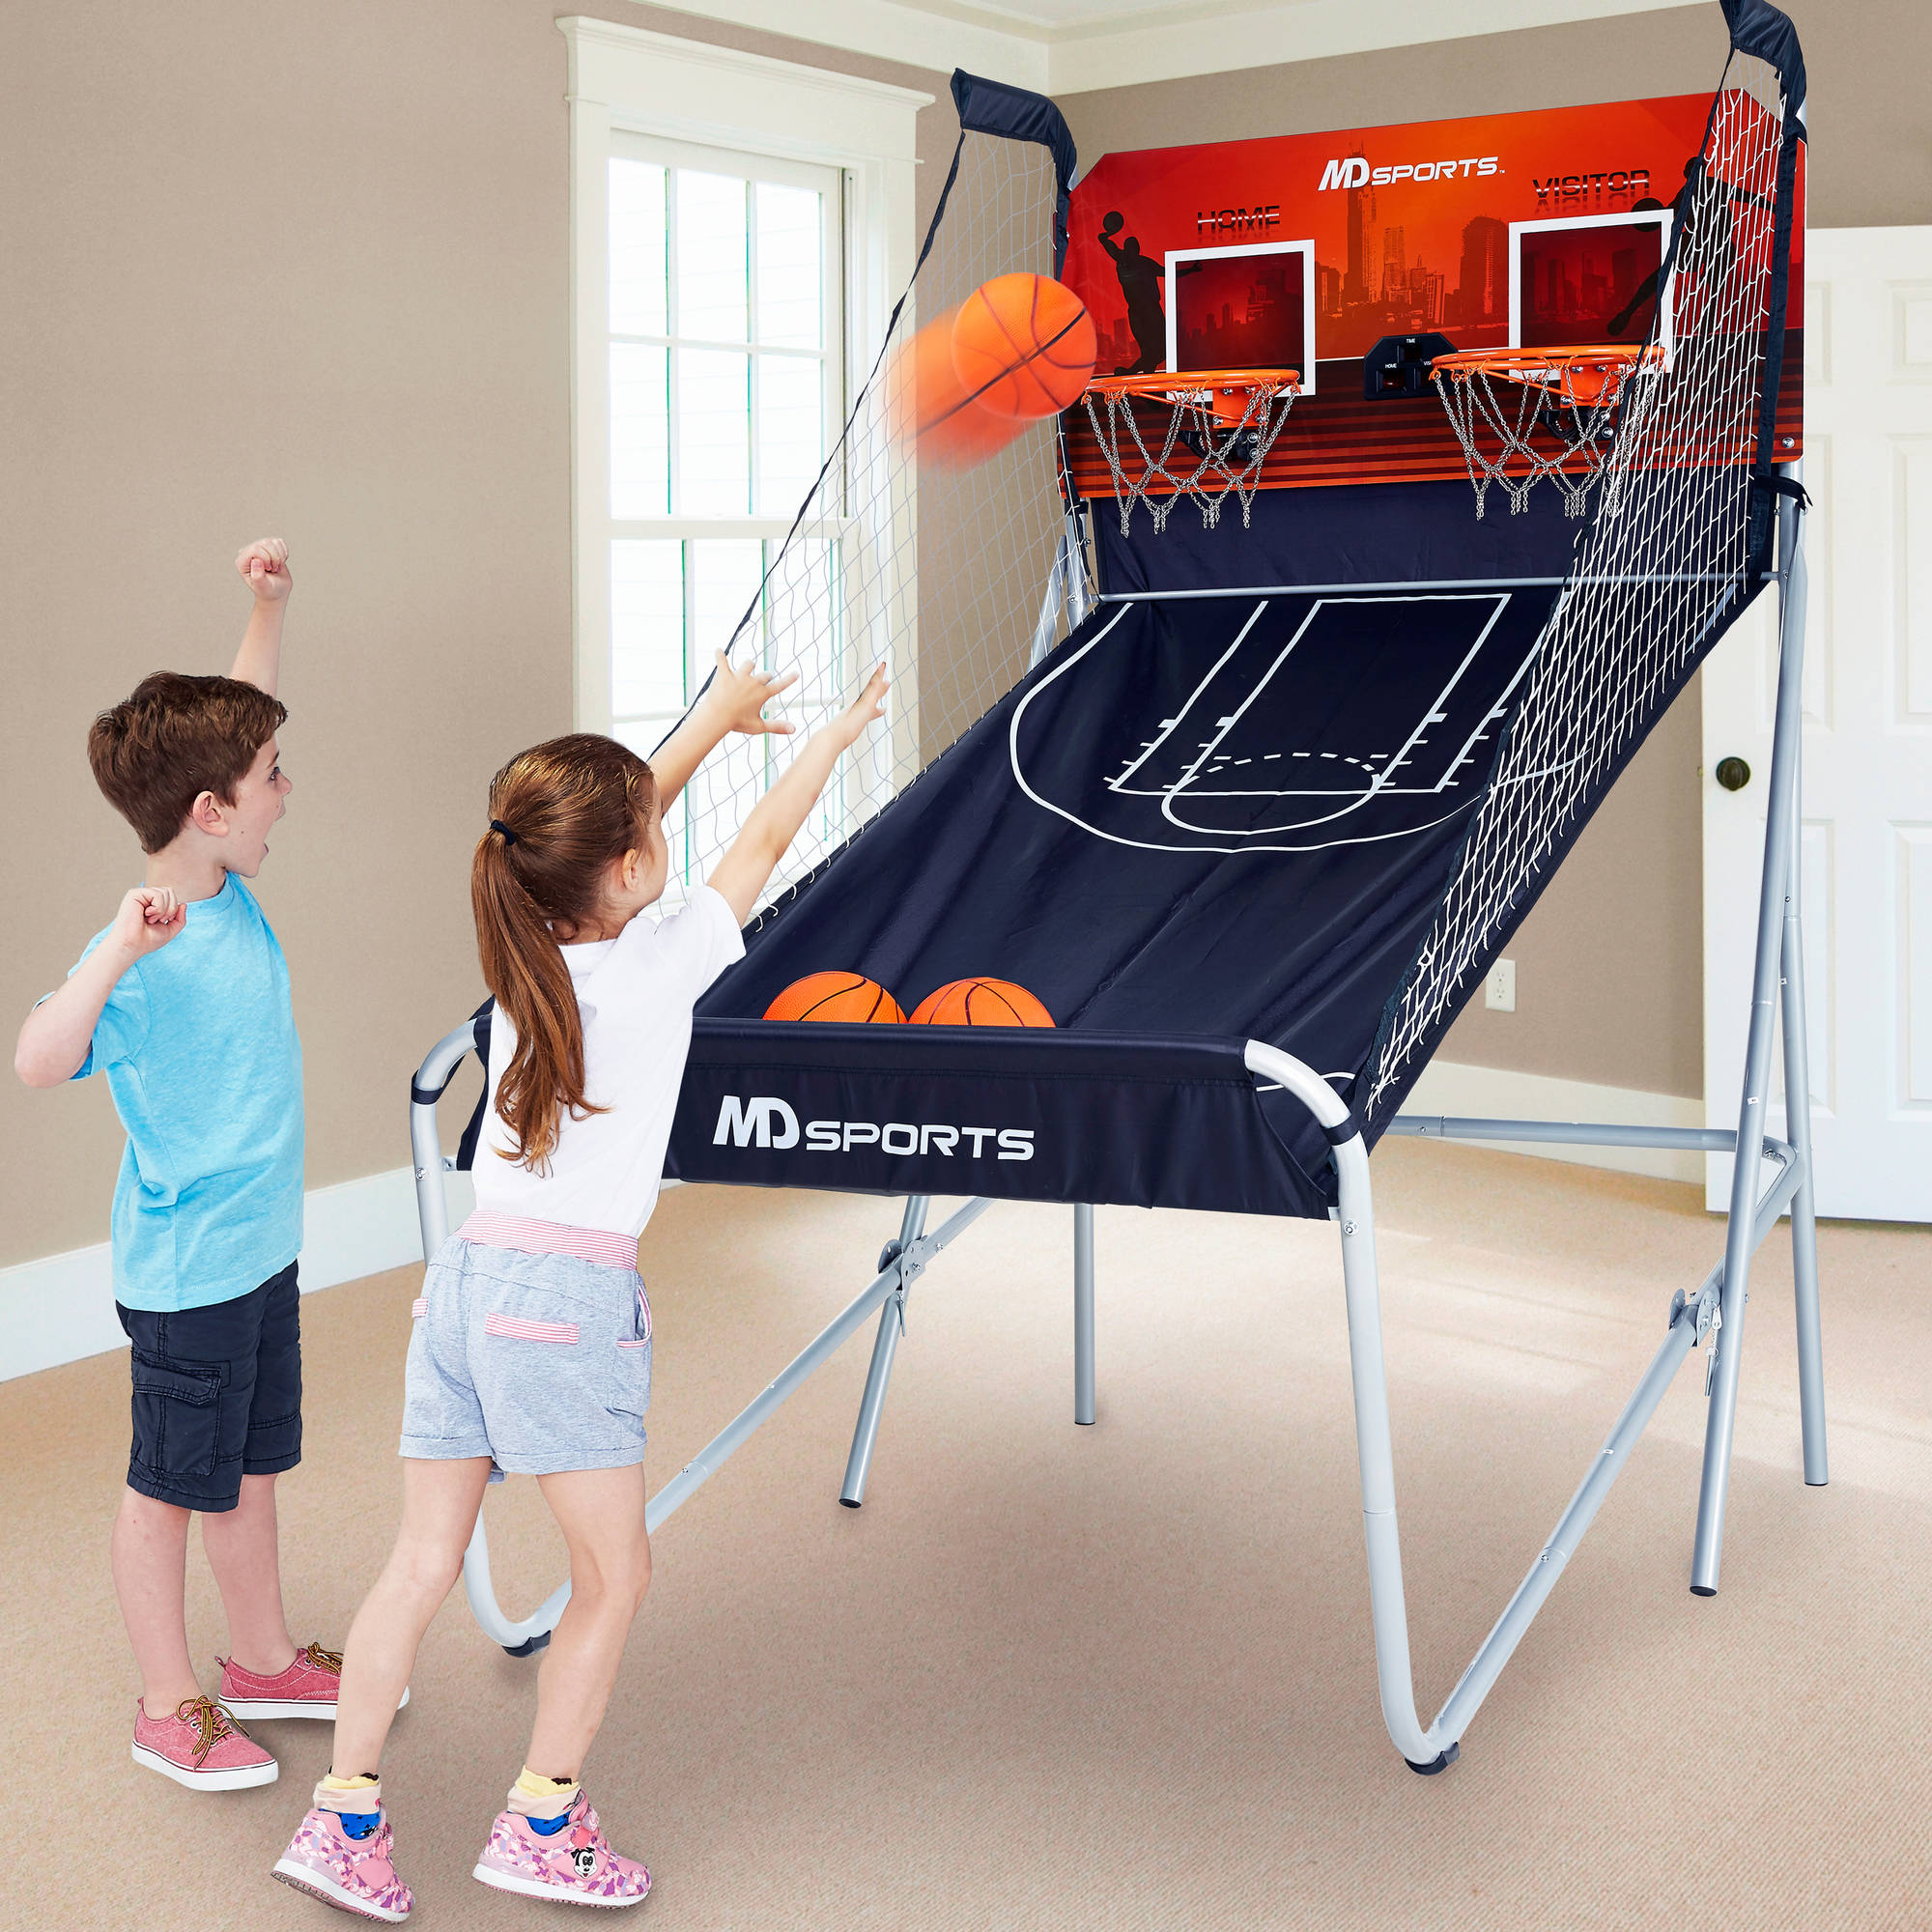 Md Sports Premium 2-player Basketball Ga